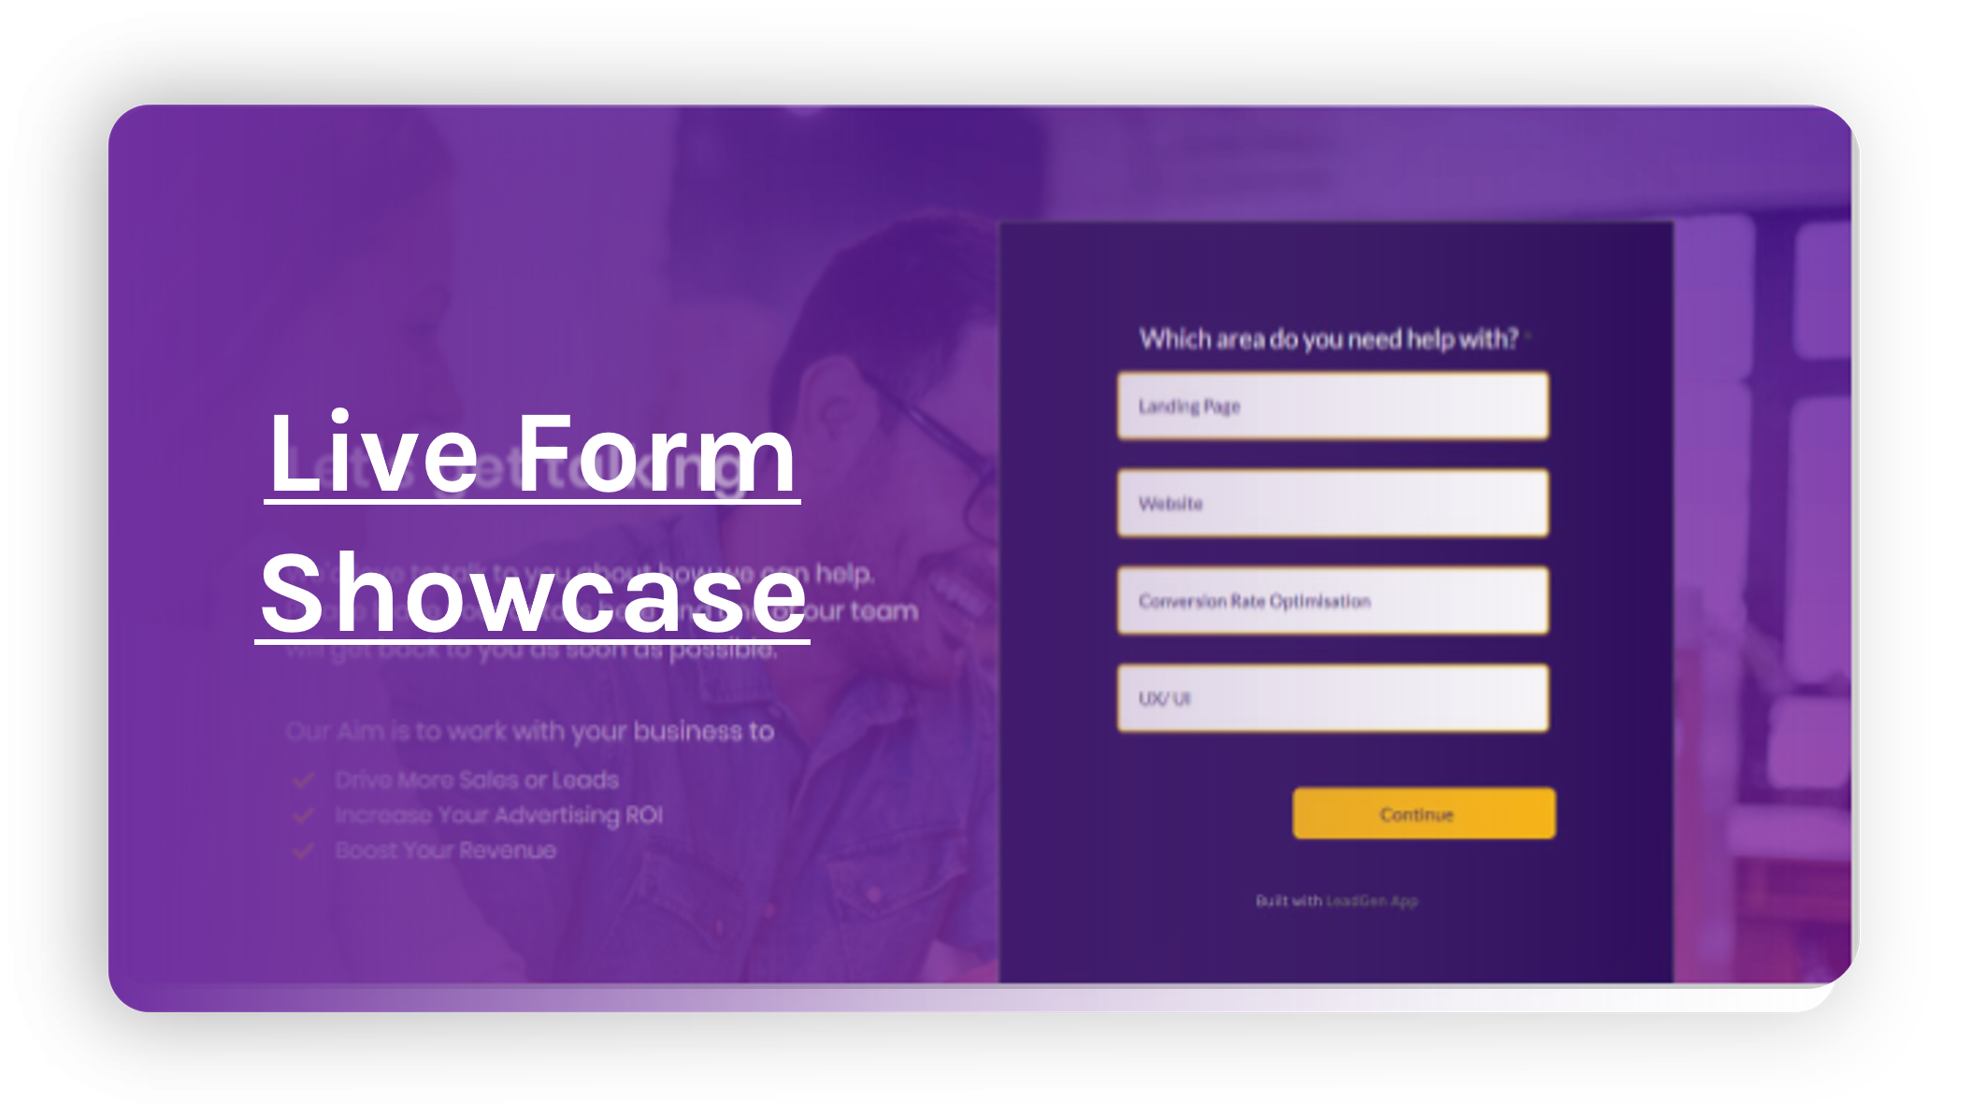 Live form showcase of Form examples for data capture and lead collection